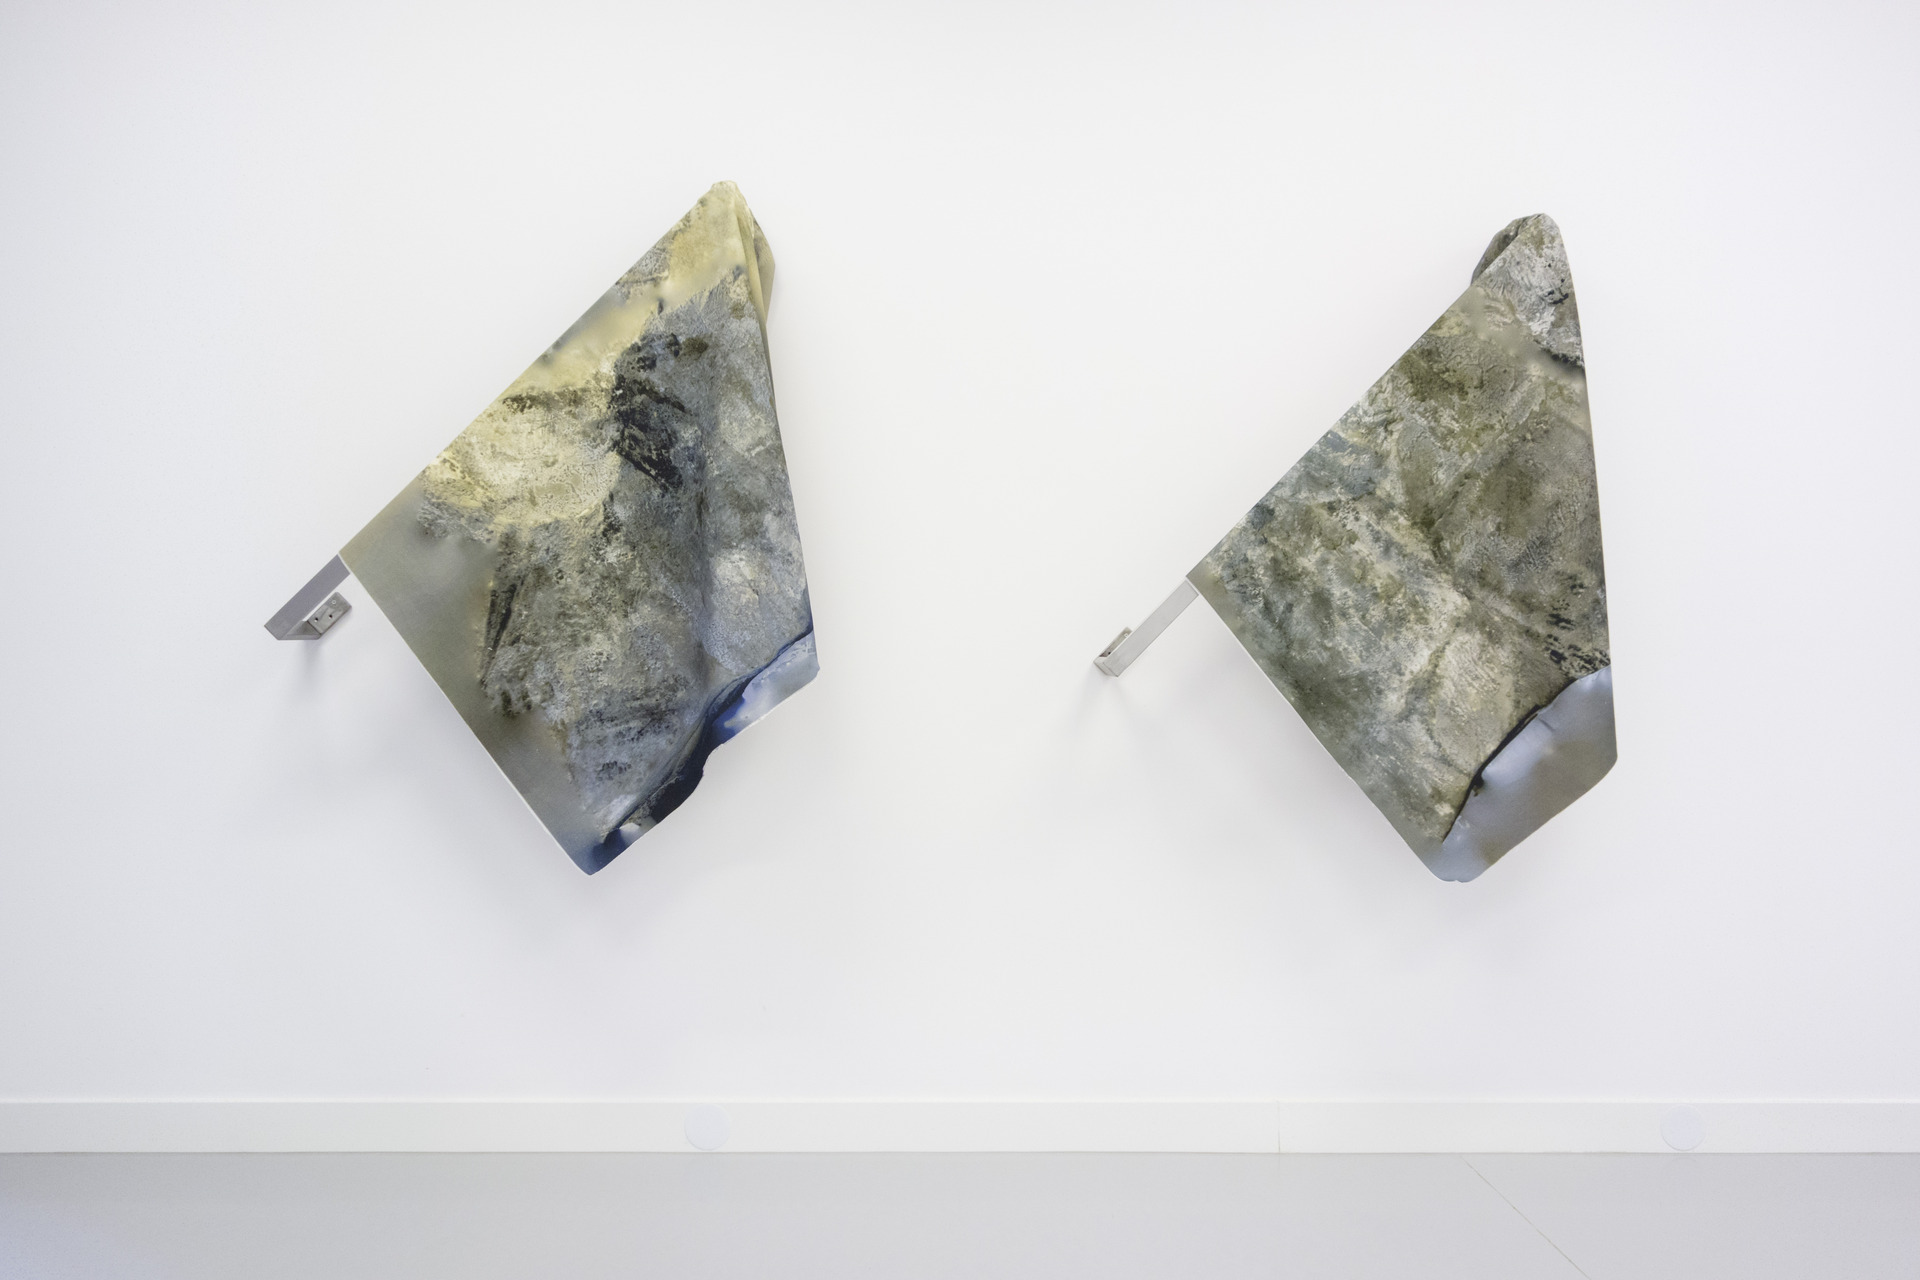 Thomas van Linge, Transformer (no. 1 & 2), 2014, dimensions variable